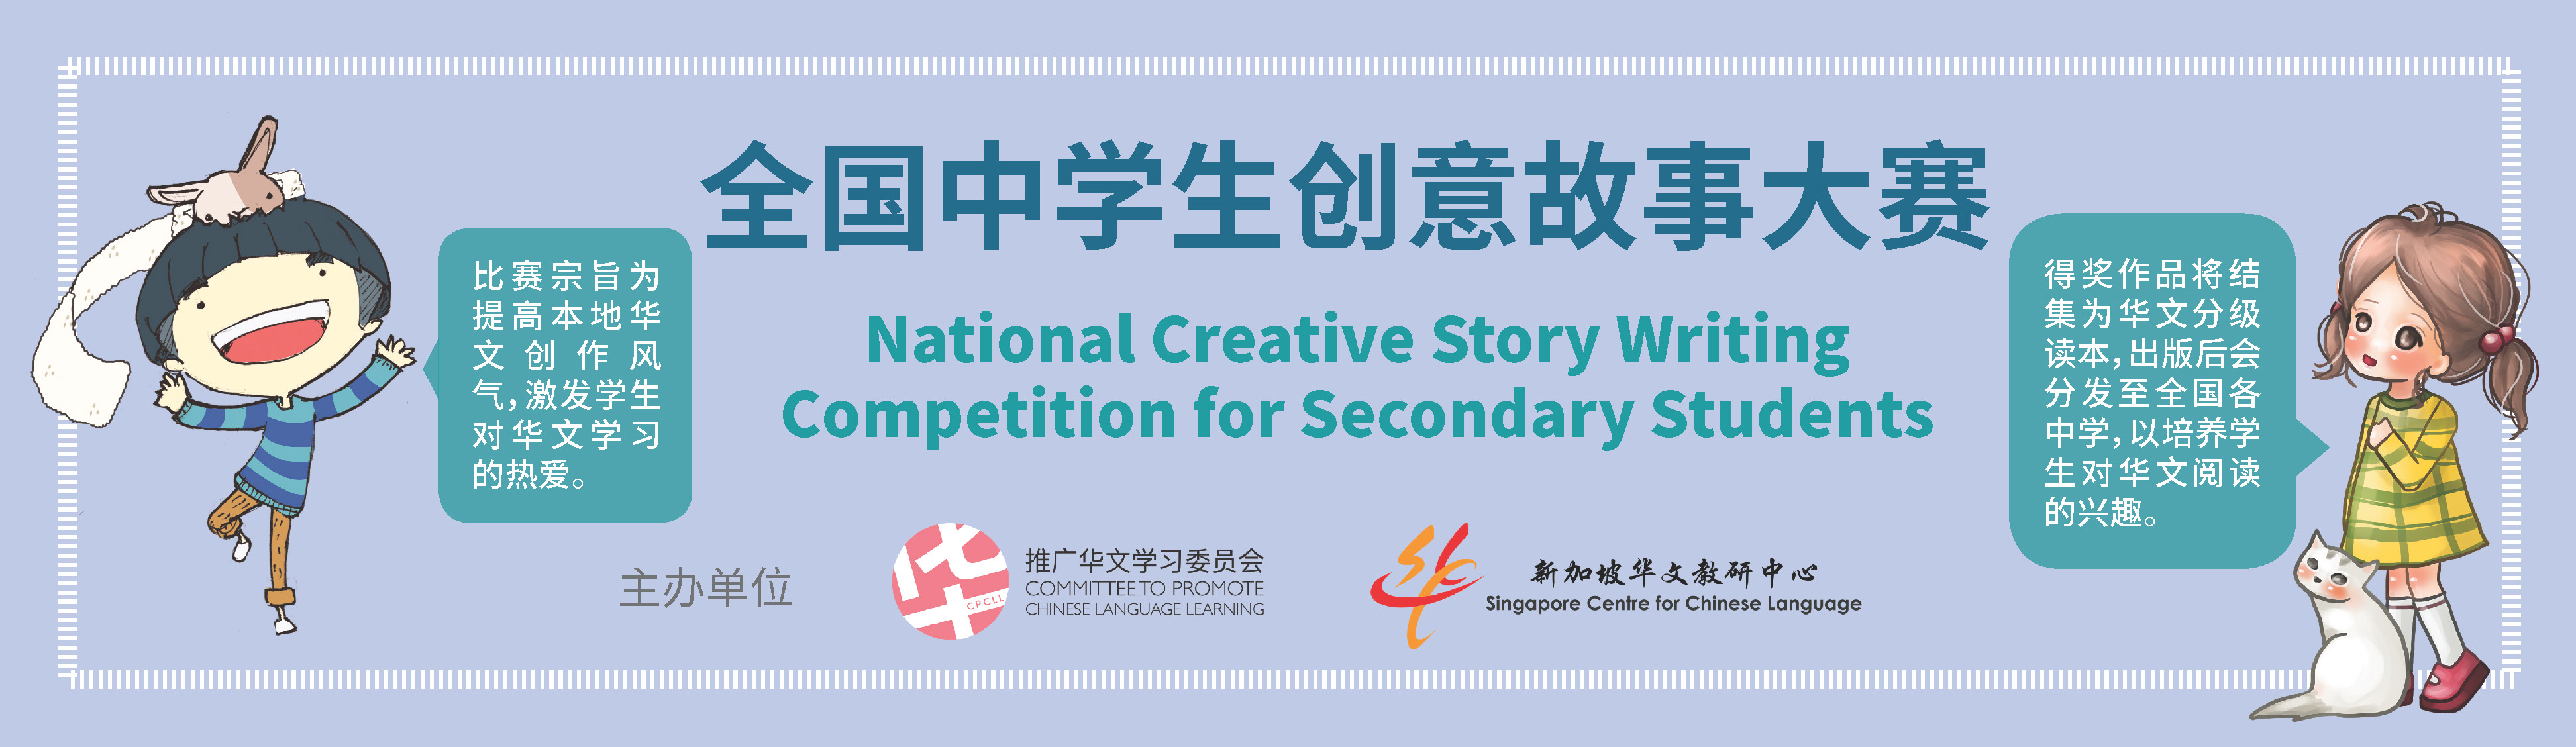 National Creative Story Writing Competition for Secondary Students